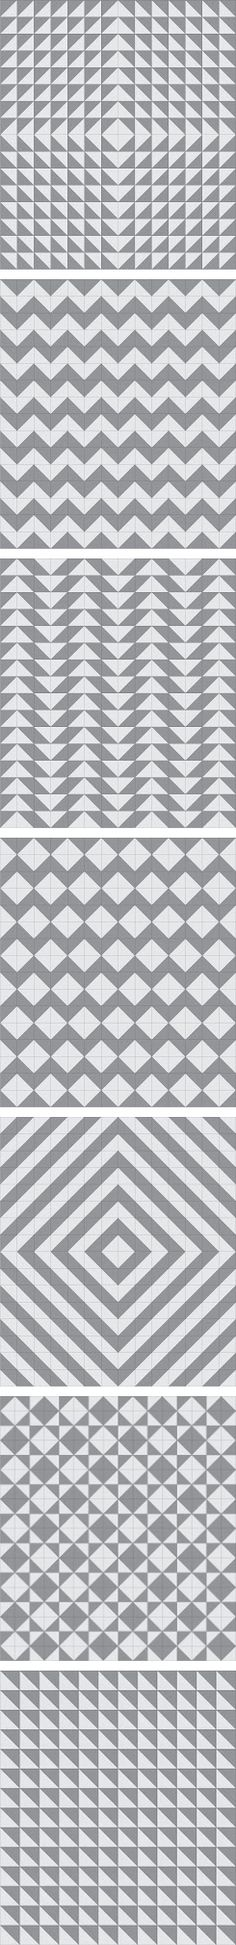 Seven half-square triangle layout patterns.